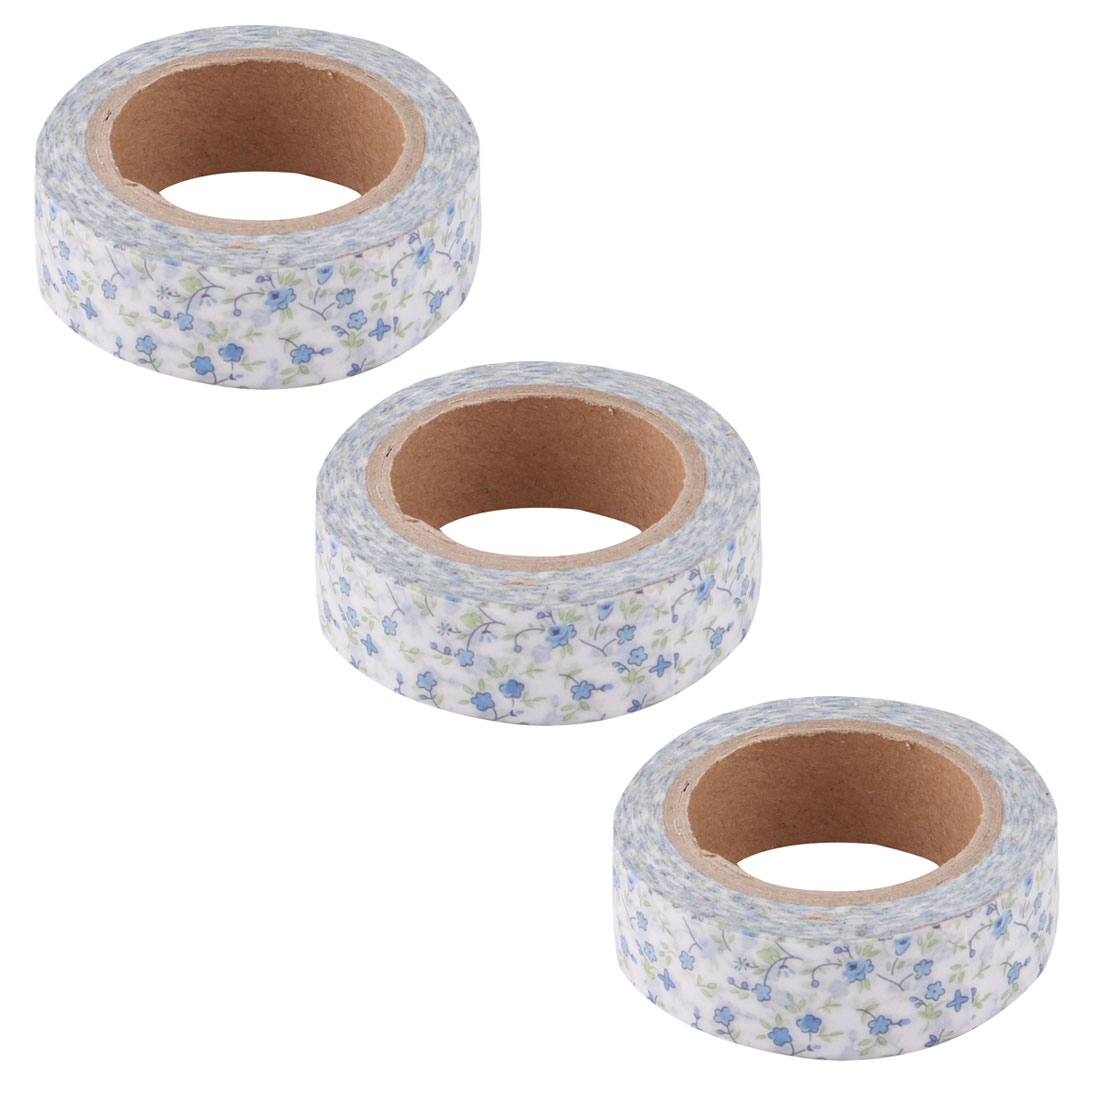 Washi Paper Flower Print Gift Bag Box Decorative Sticky Craft Tape Blue 1.5cm x 8M 3pcs